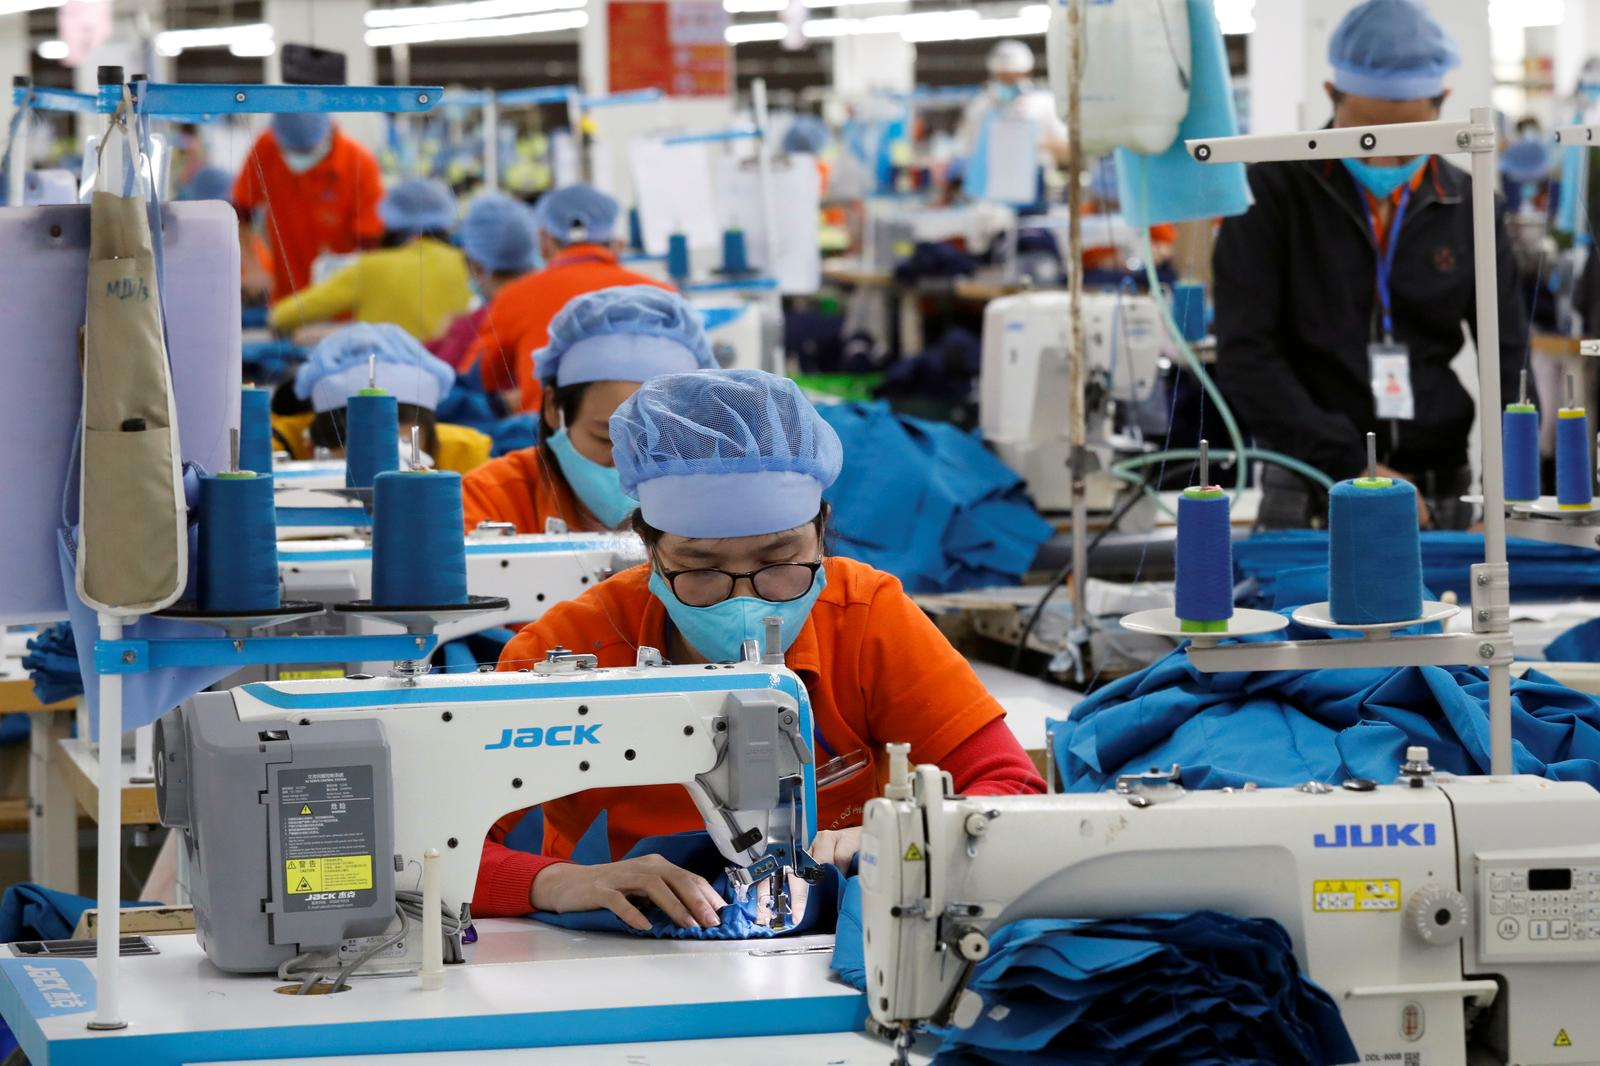 Fragile recovery seen in global labour market after huge 2020 losses: ILO